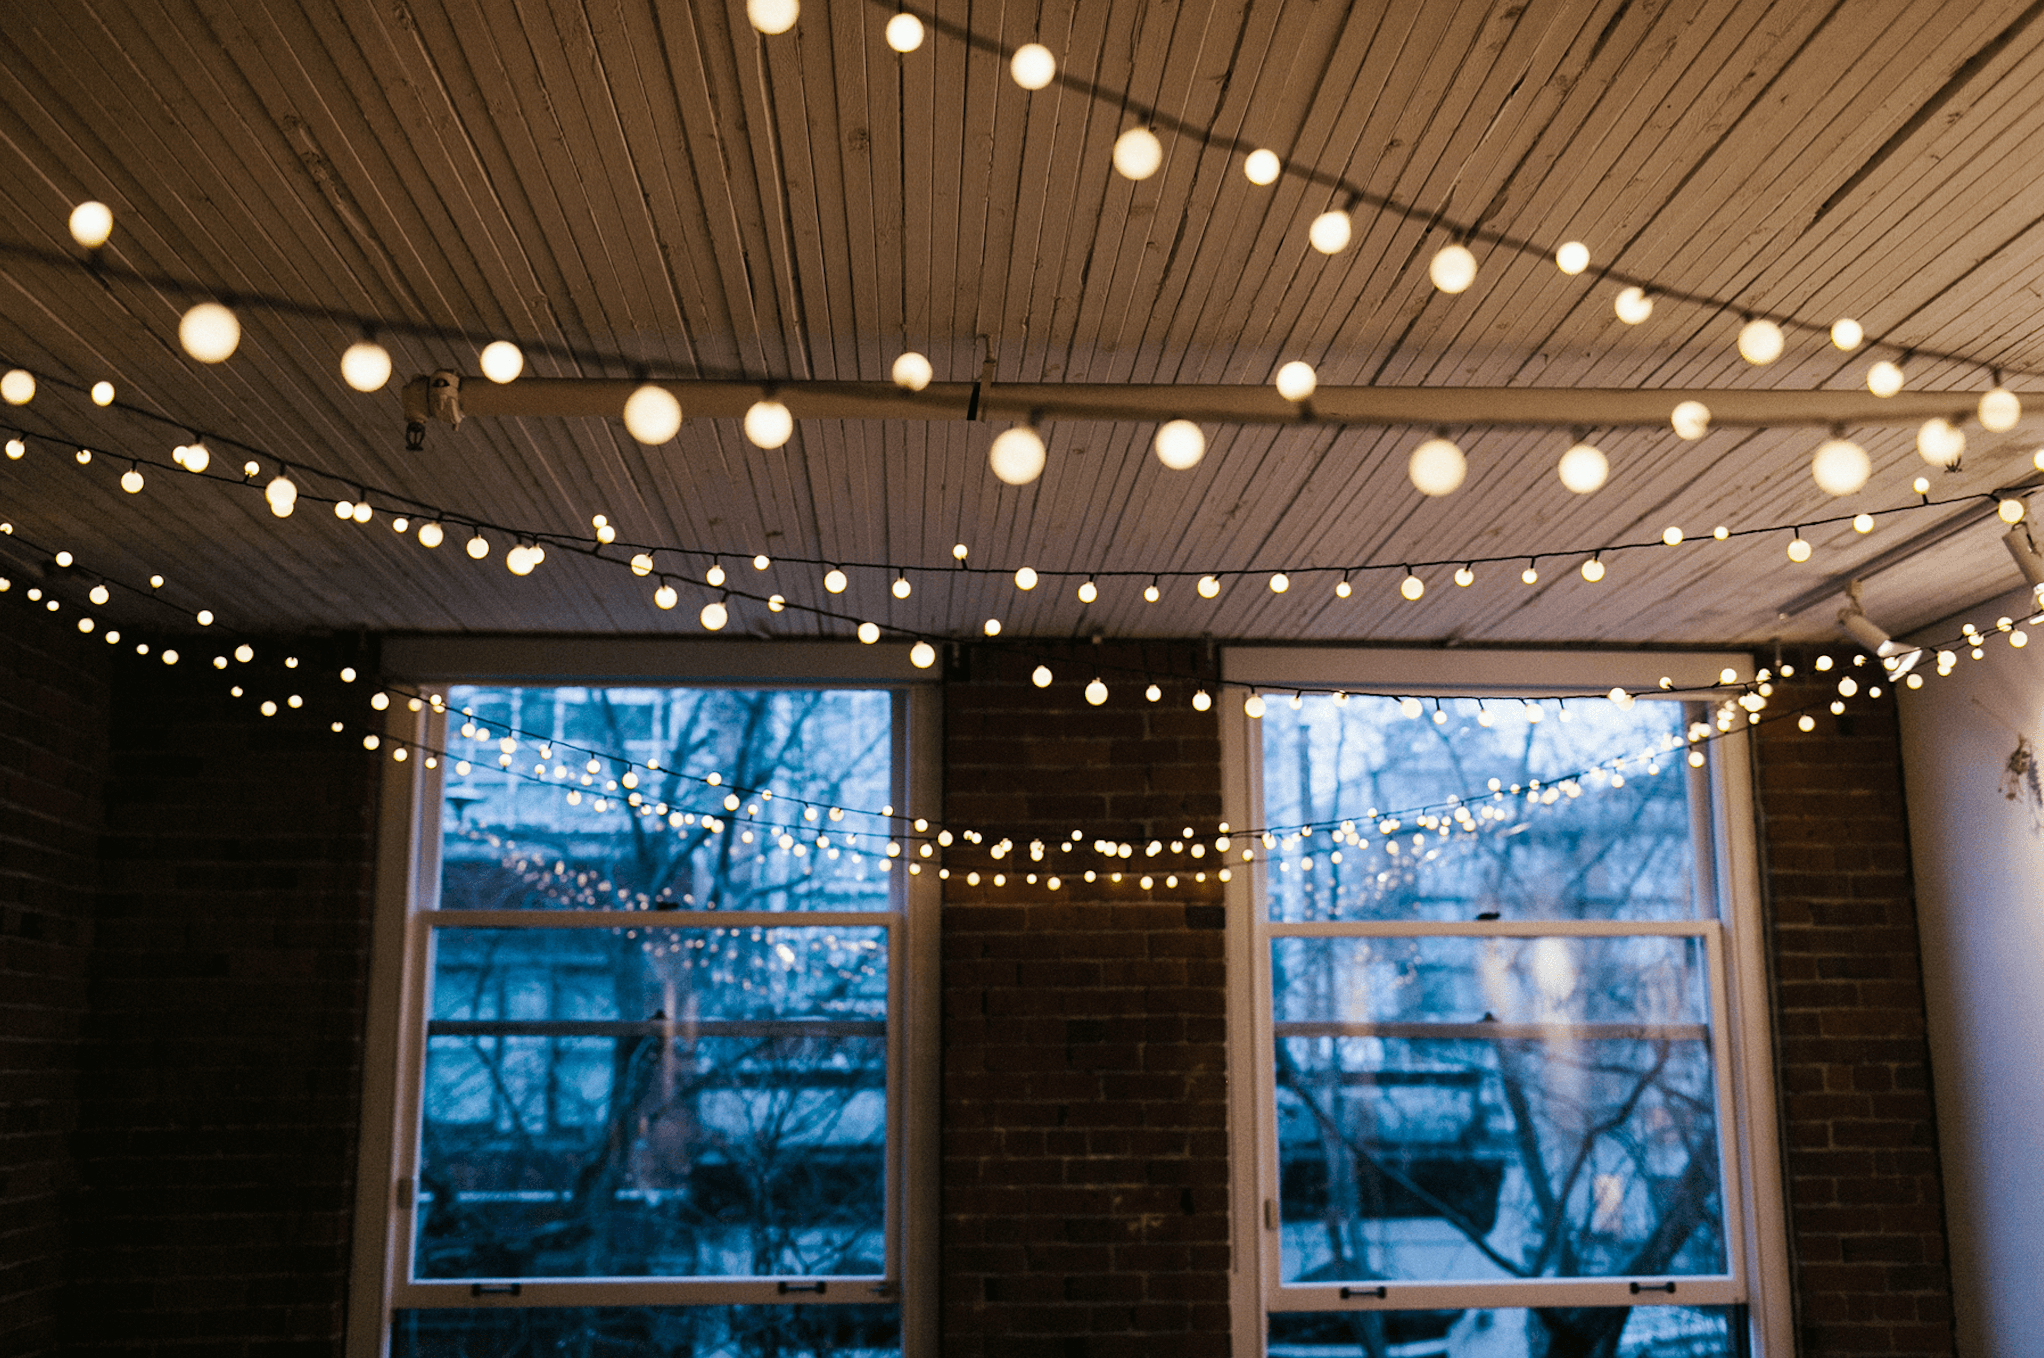 Take it a step further by adding colorful string lights to your clear lights for a touch of something new and different.